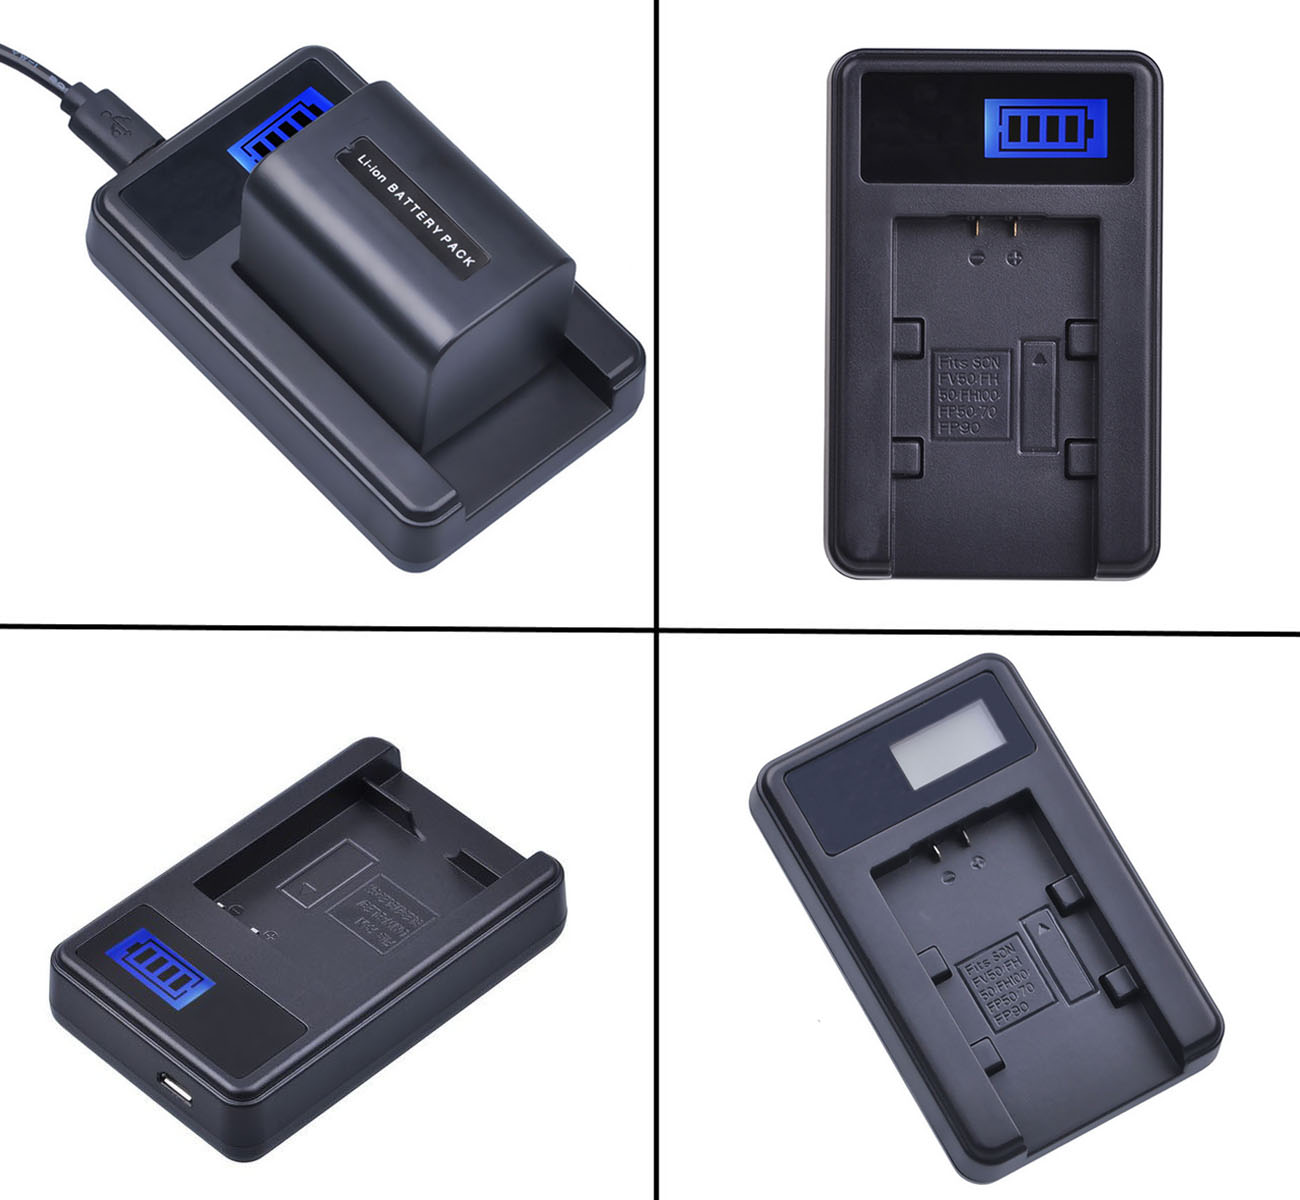 Portable AC Battery Charger for NP-FV50 NP-FV70 NP-FV100 Sony HDR-XR200 HDR-XR150 HDR-XR100